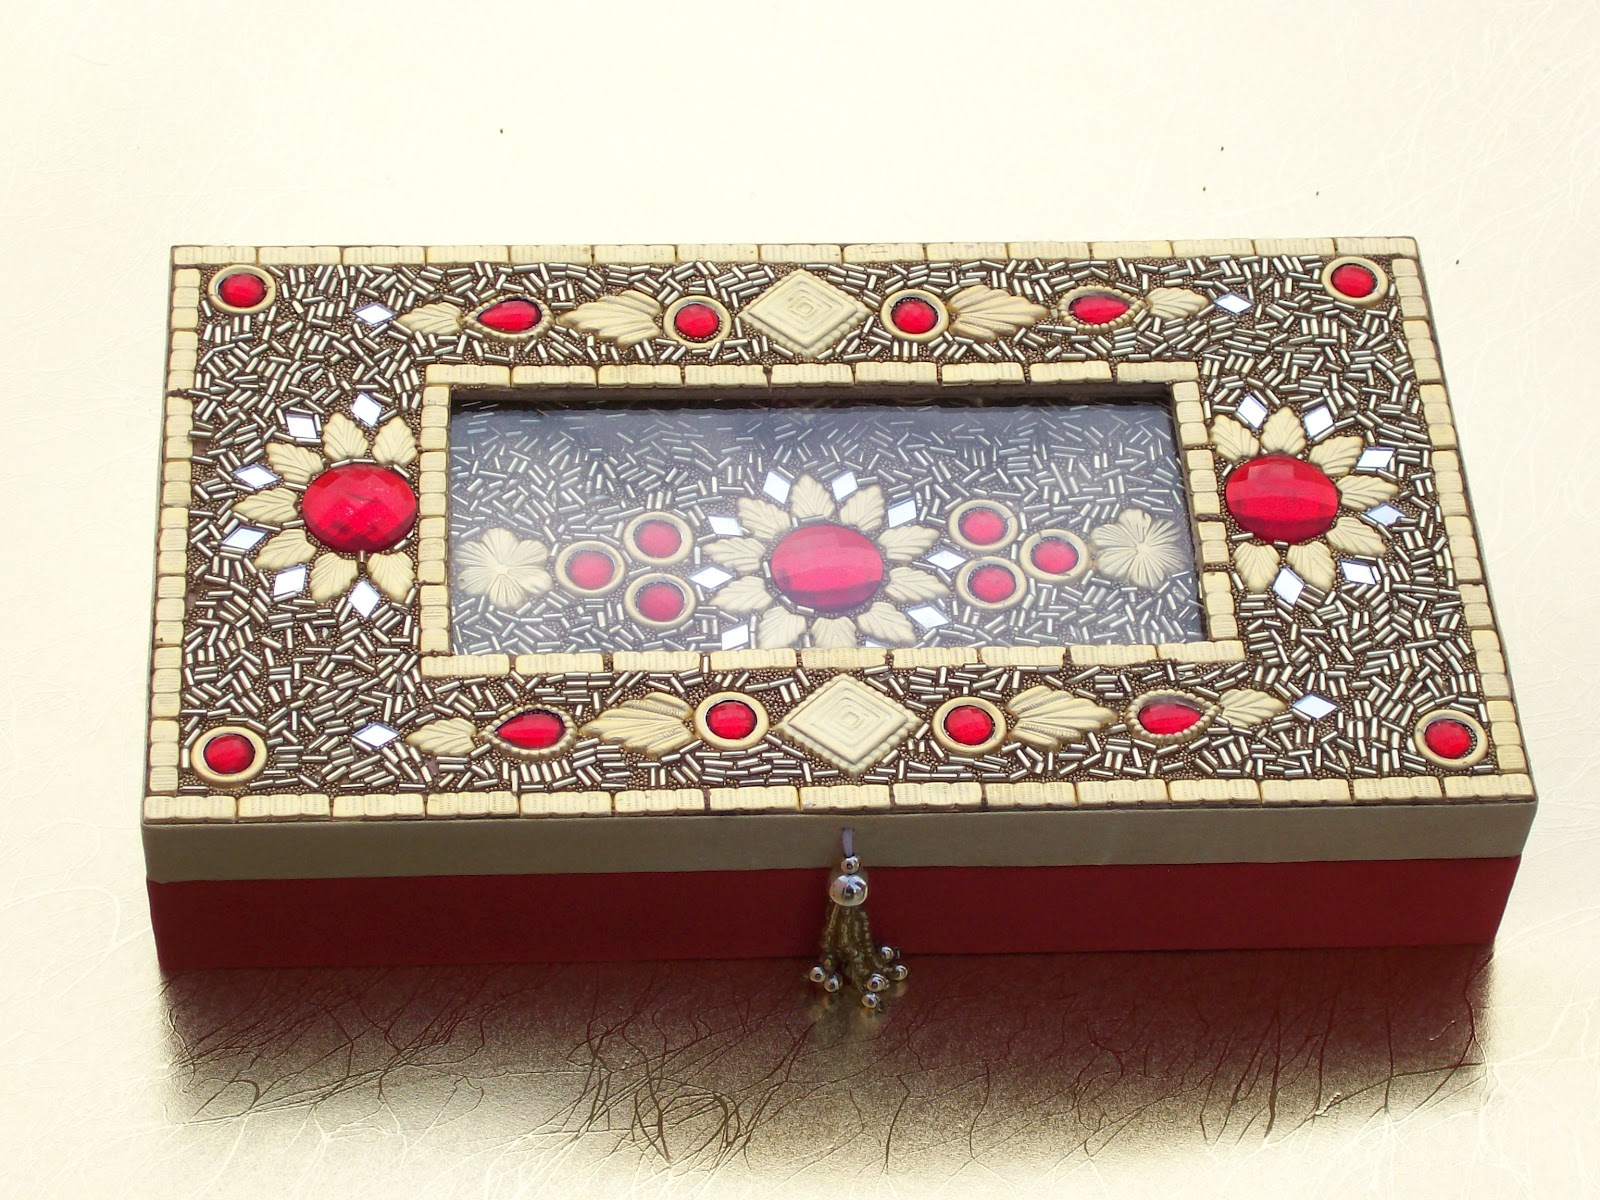 Festival cards india wedding cards box collection for Chawla wedding cards boxes ludhiana punjab